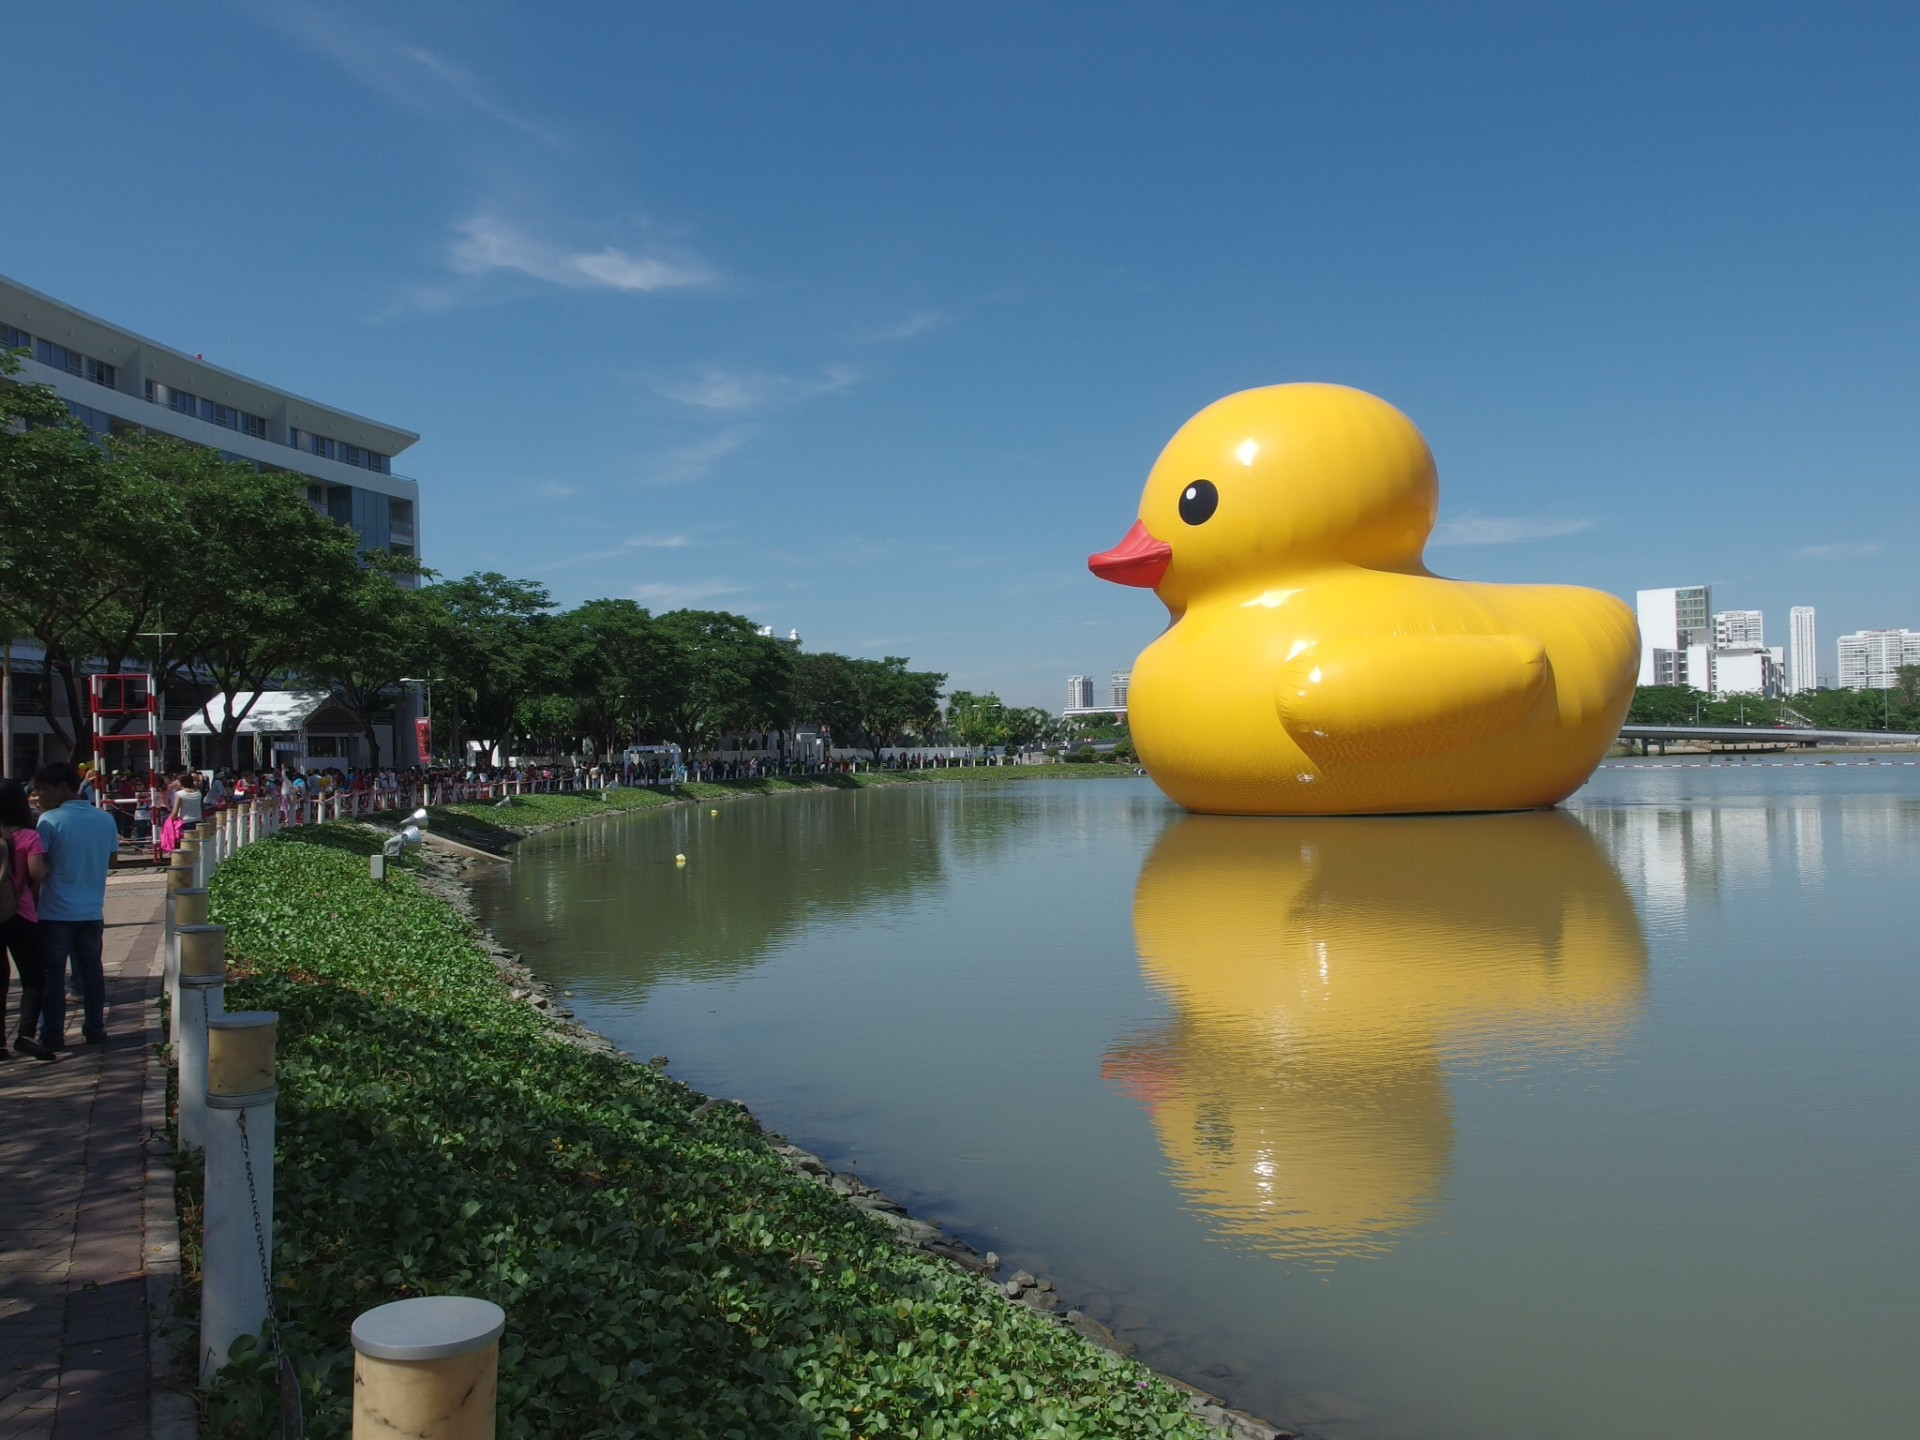 Giant Duckie